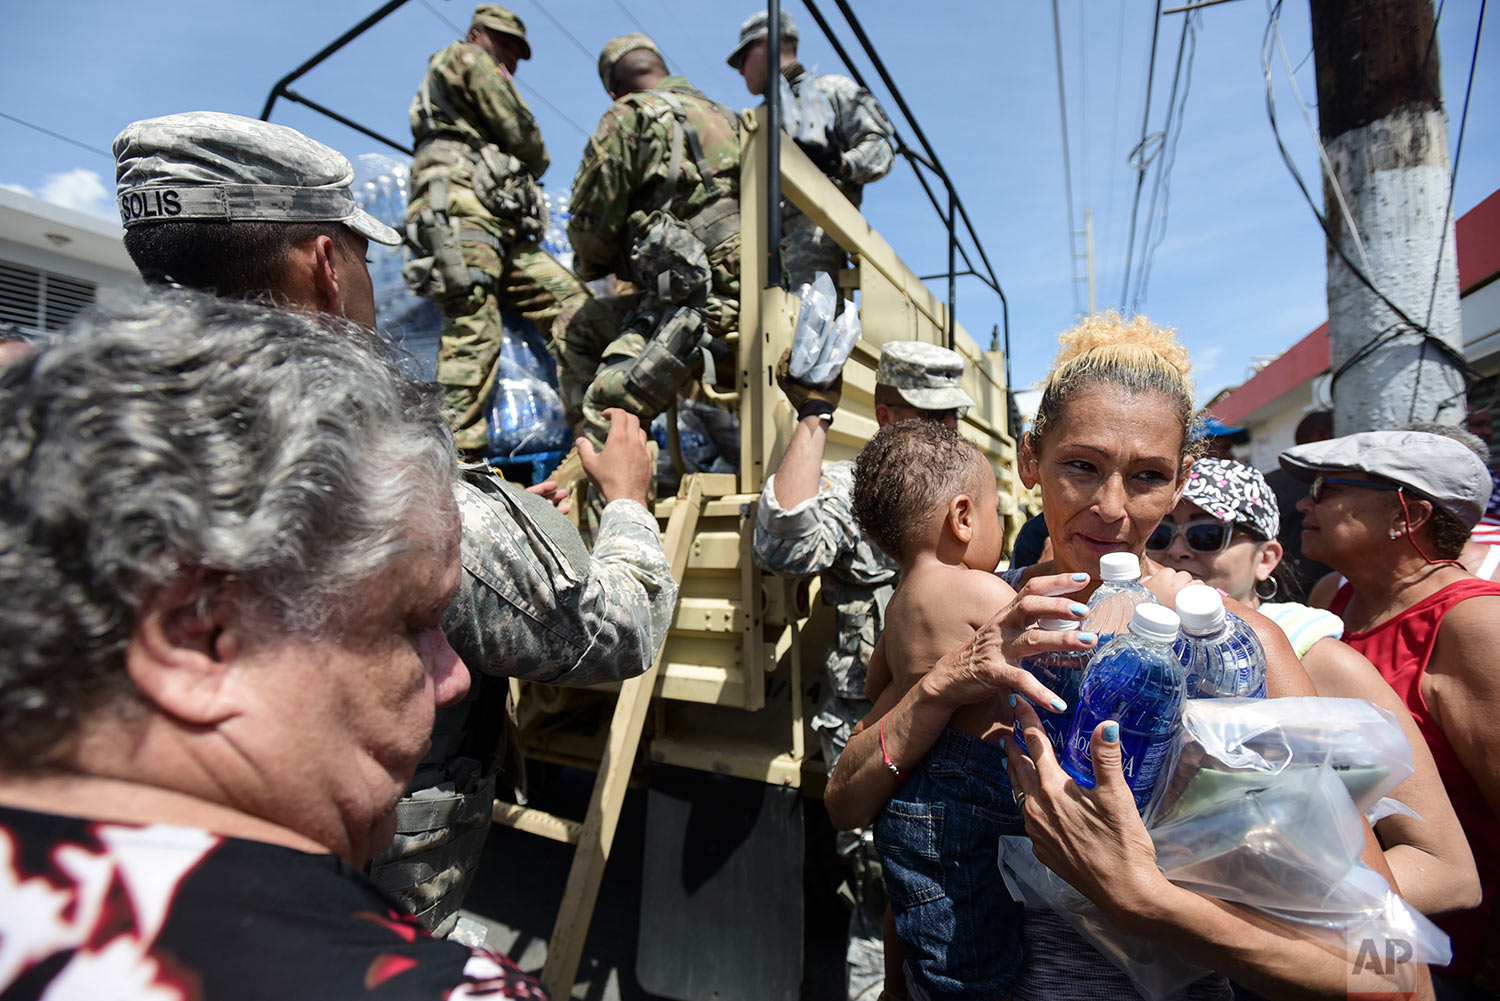 National Guard Soldiers arrive at Barrio Obrero in Santurce to distribute water and food among those affected by the passage of Hurricane Maria, in San Juan, Puerto Rico, Sunday, Sept. 24, 2017. (AP Photo/Carlos Giusti)